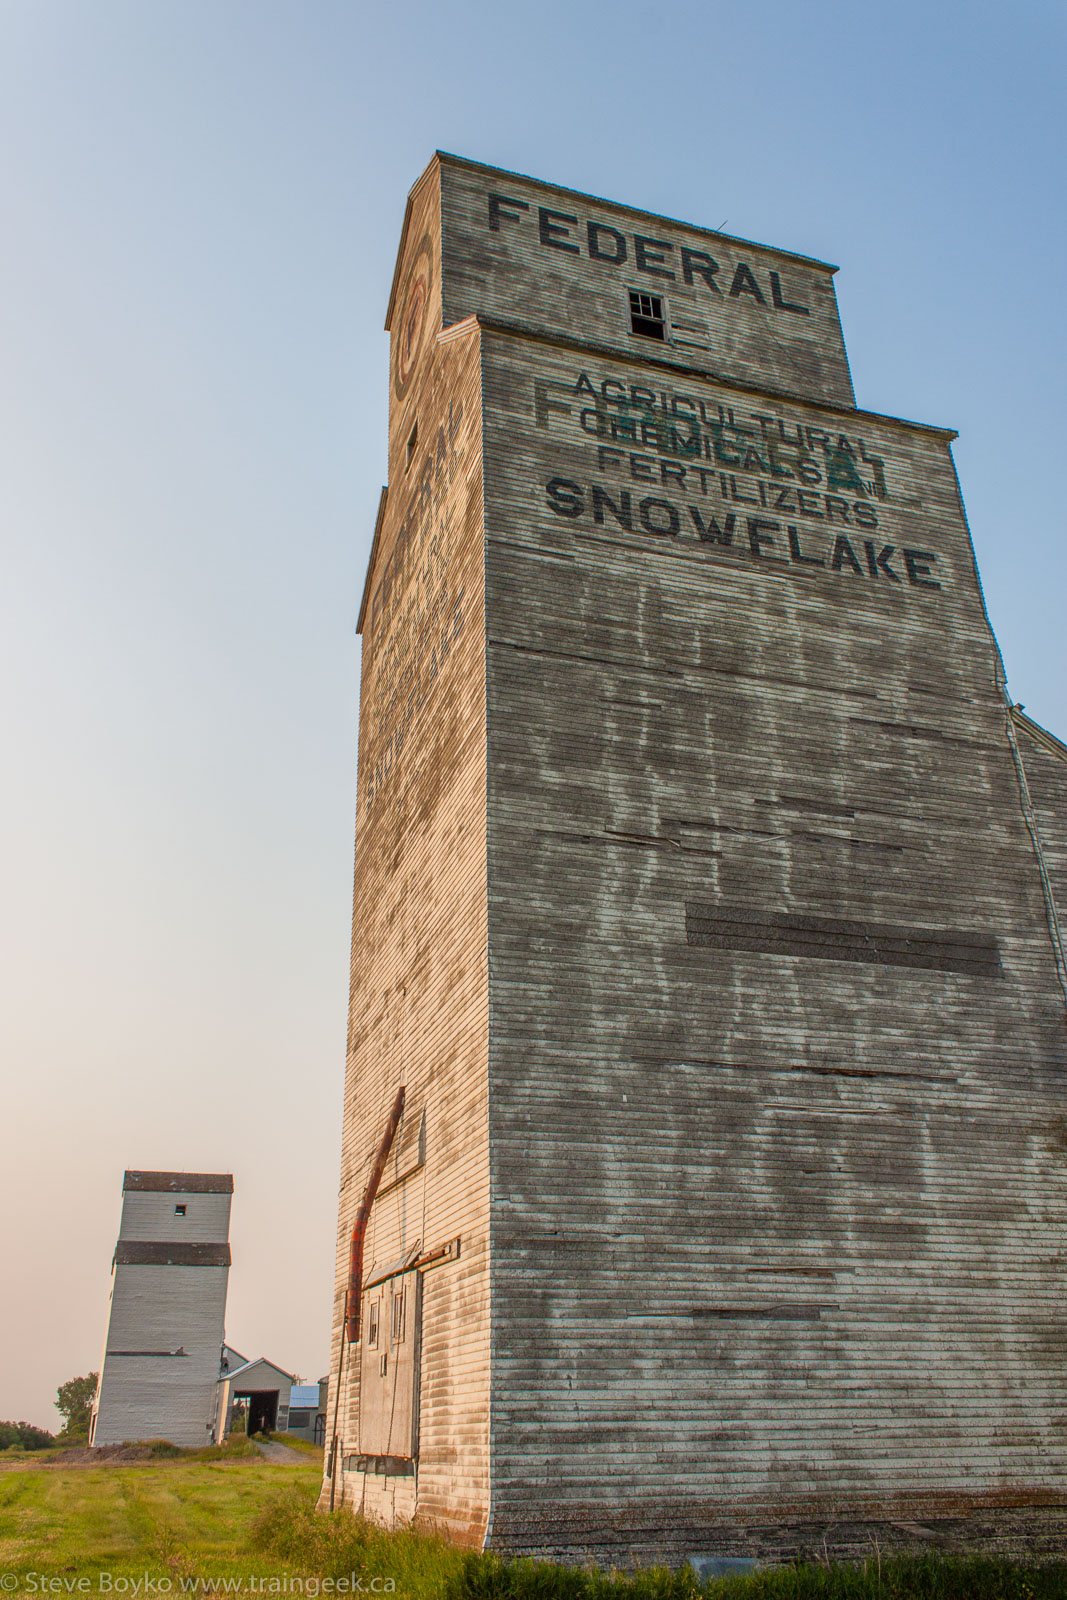 The former Federal and Pool grain elevators in Snowflake, MB 2014/07/20